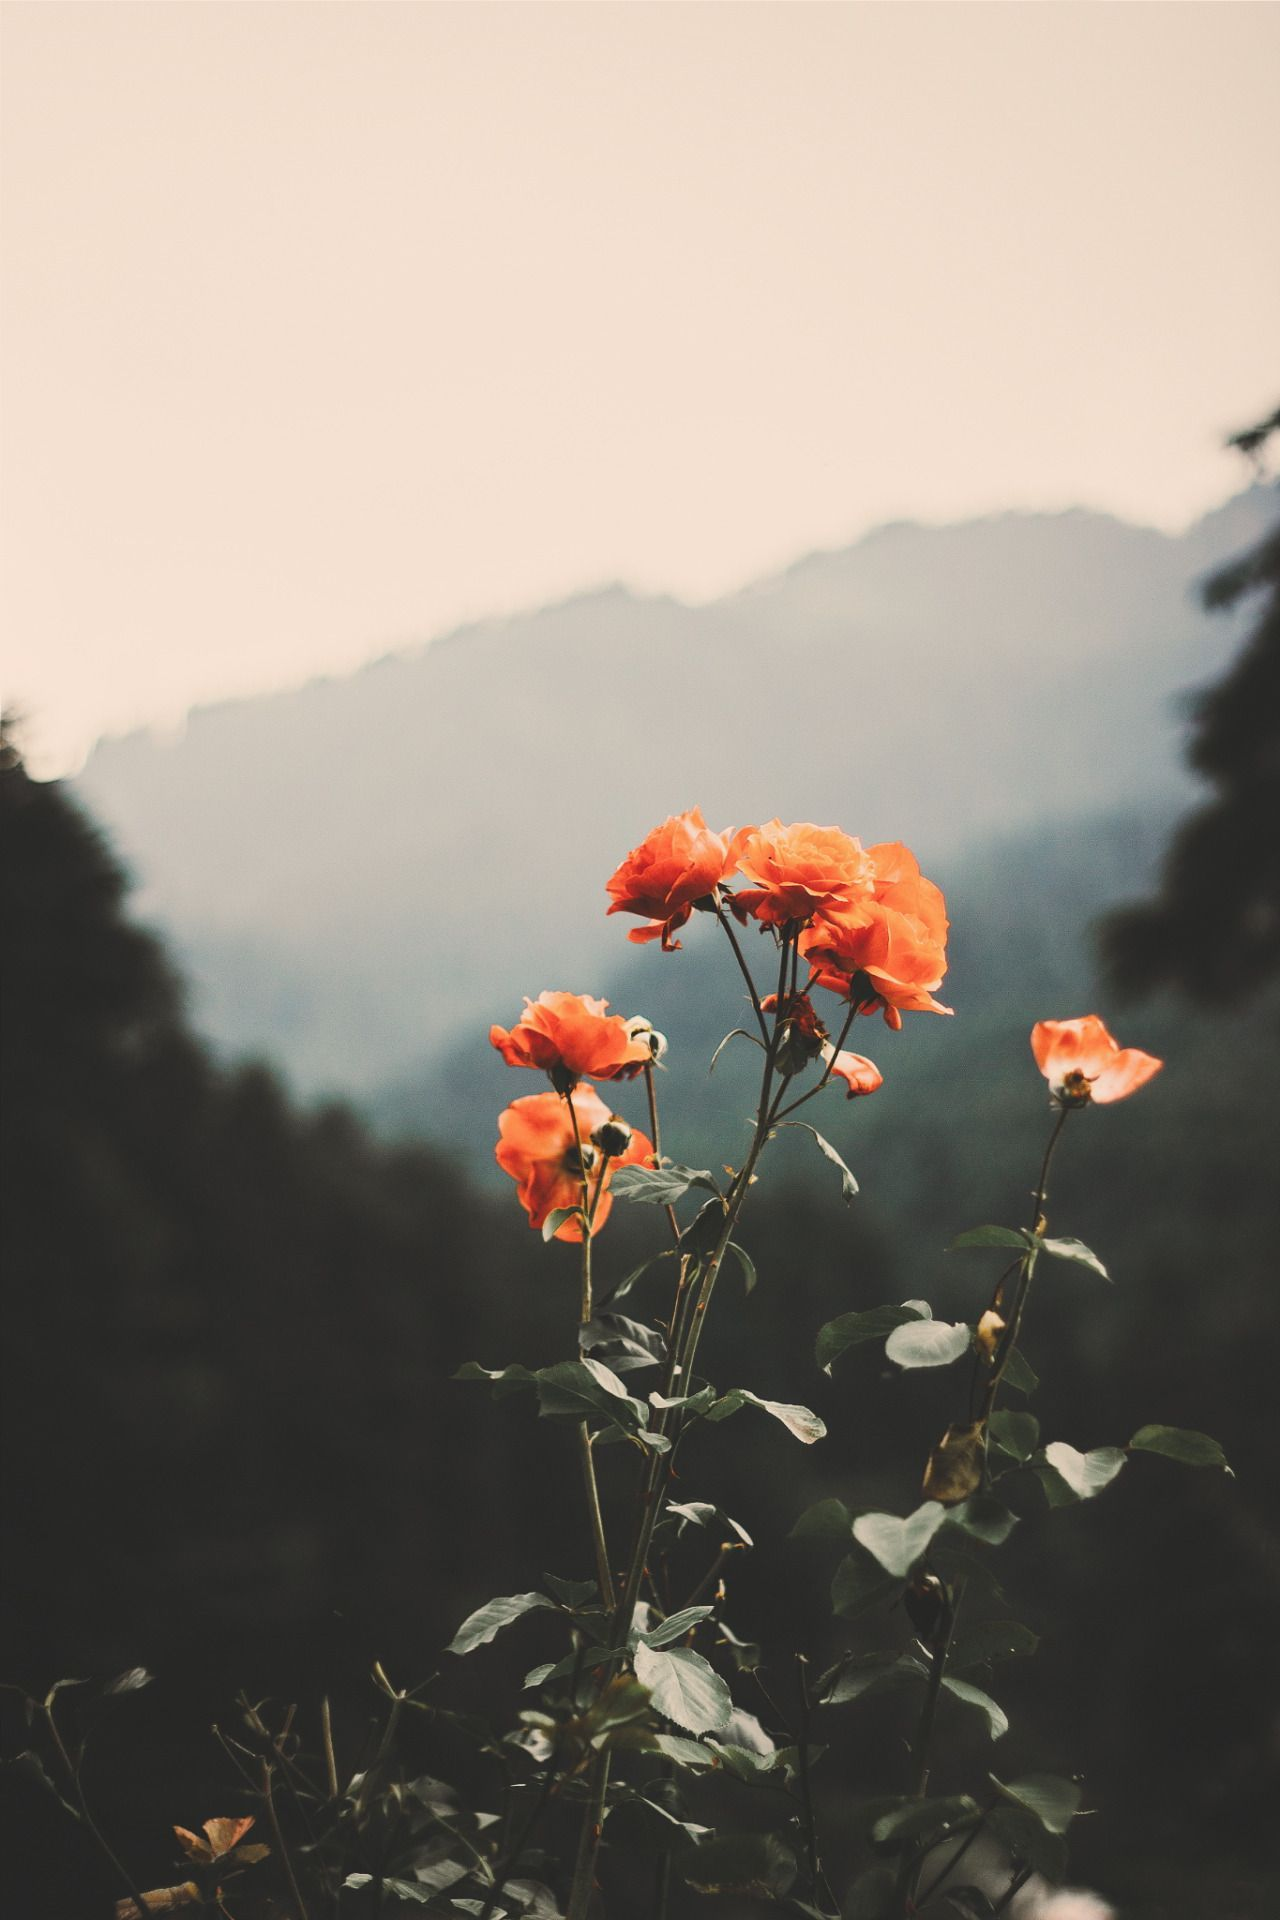 Desvre Nature Aesthetic Nature Photography Flower Aesthetic